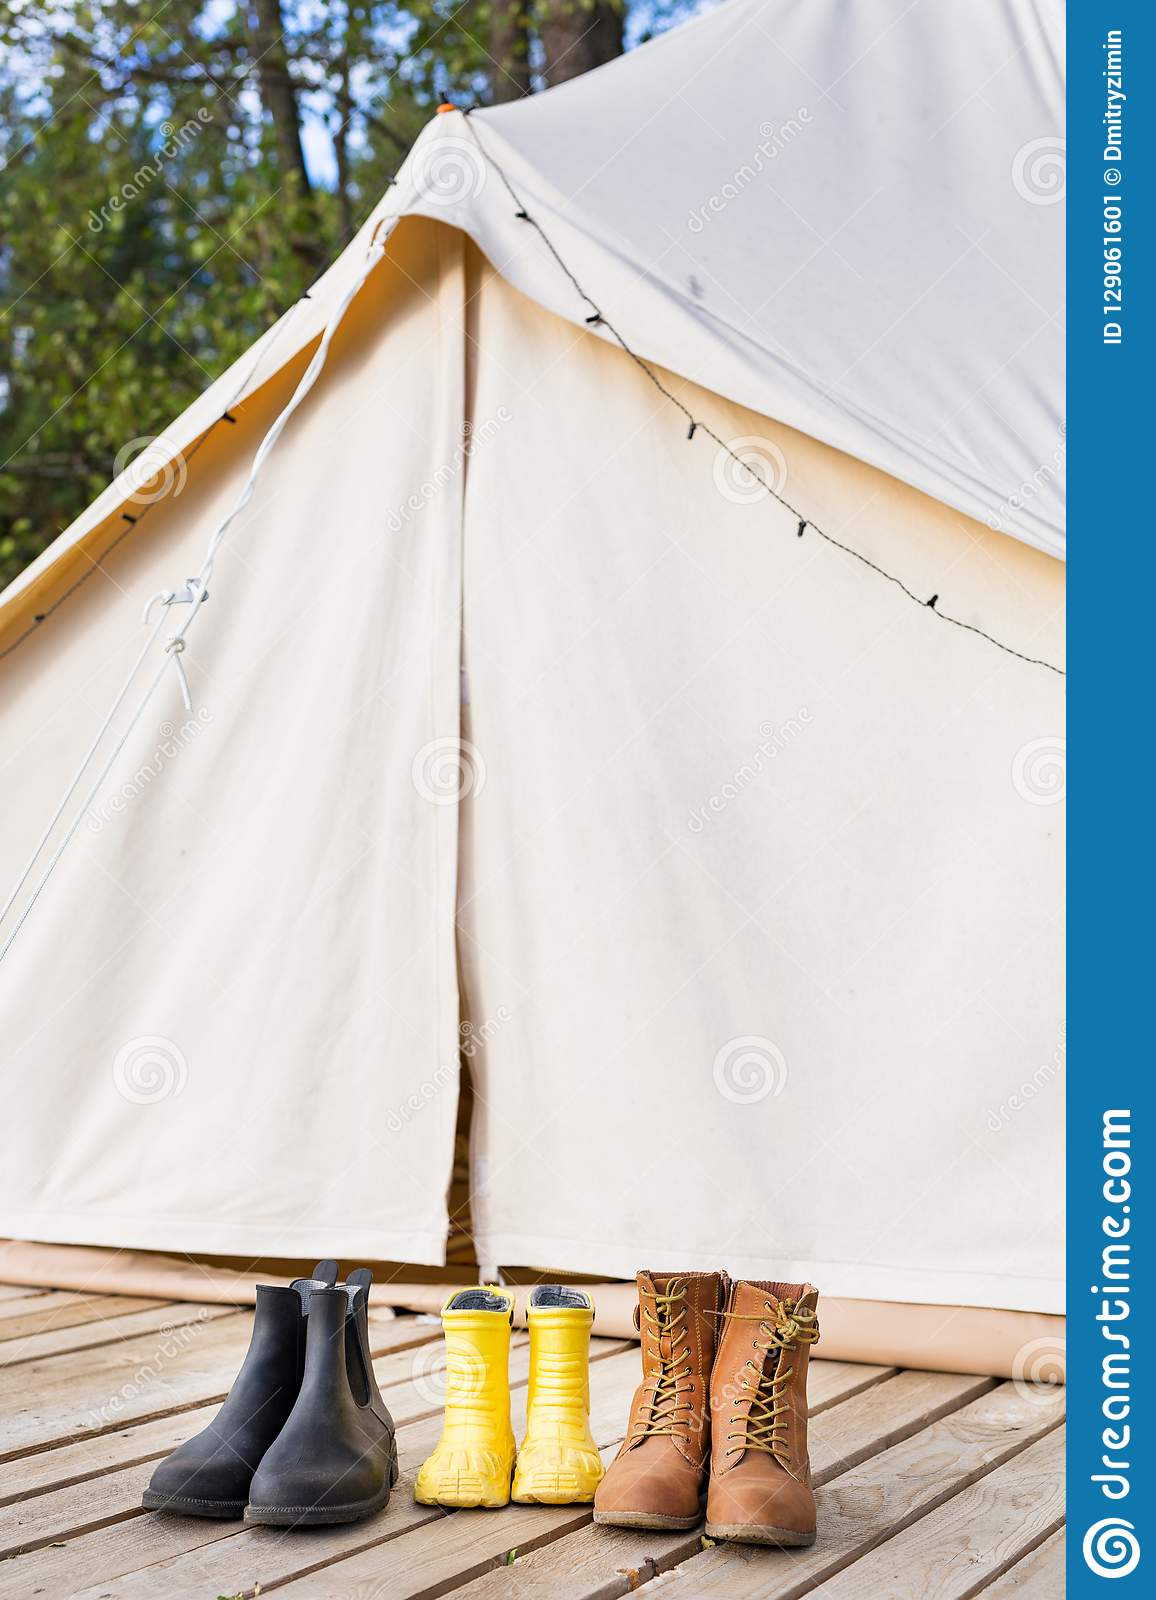 Close-up of glamping bell tent with shoes. Family camping concept